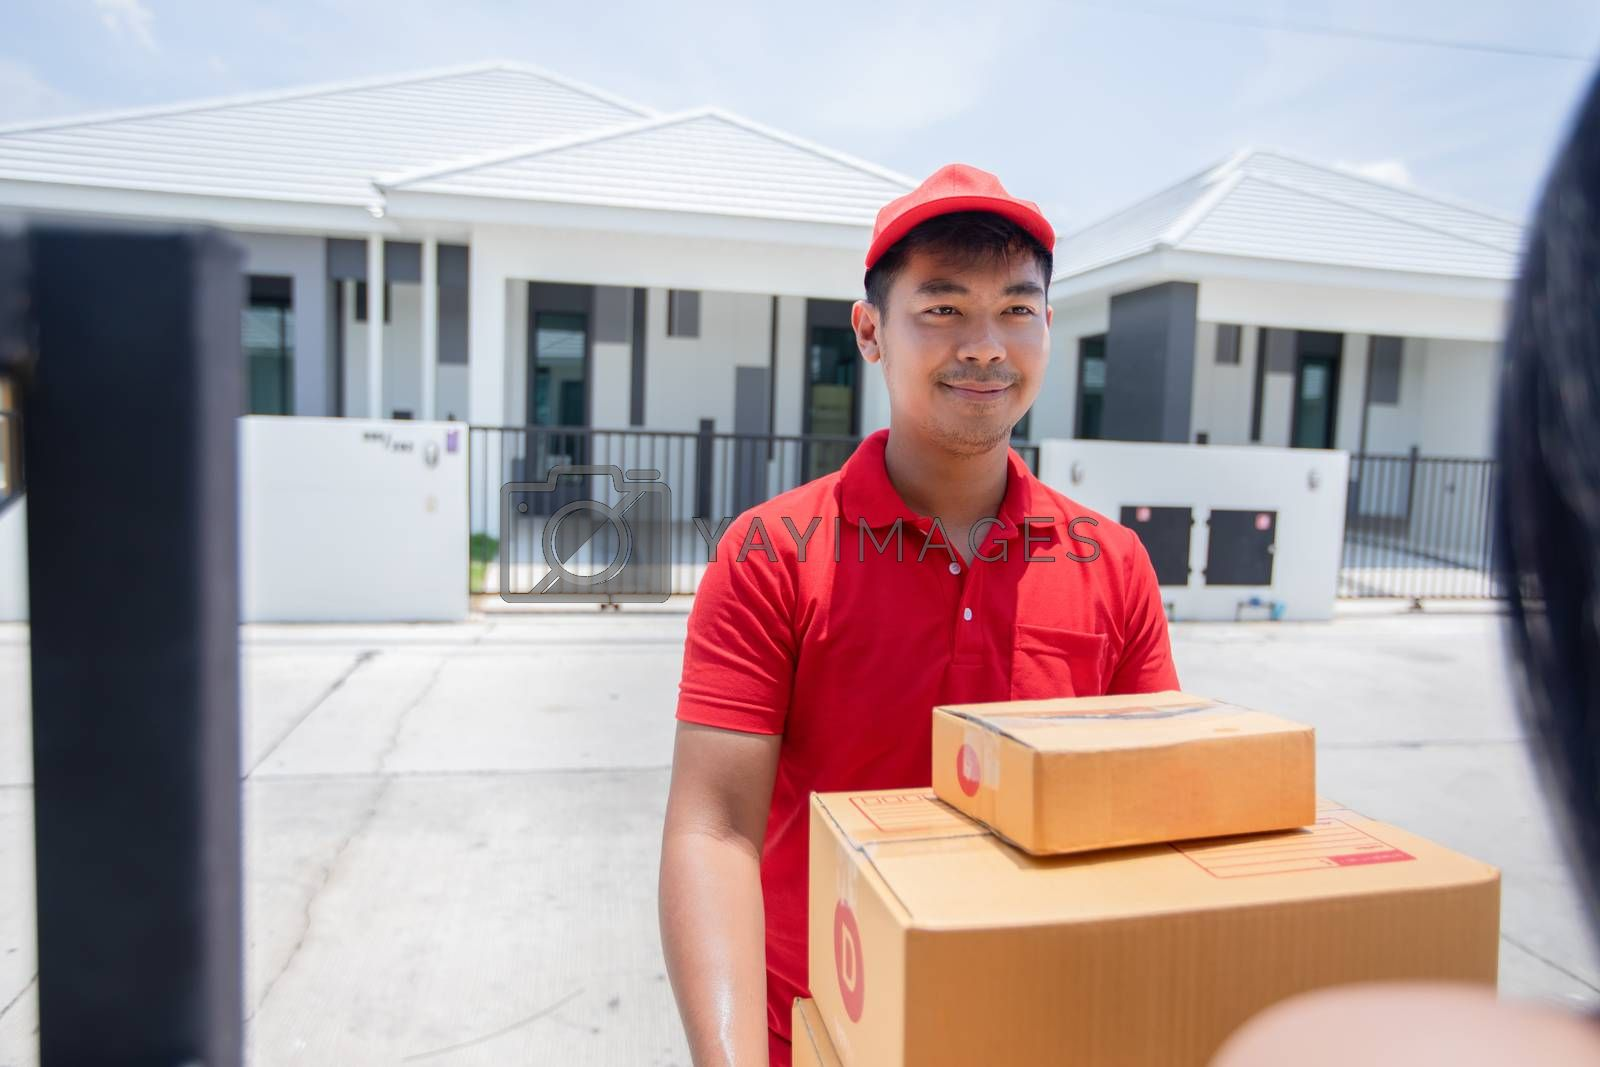 Asian delivery servicemen wearing a red uniform with a red cap and handling cardboard boxes to give to the female customer in front of the house. Online shopping and Express delivery